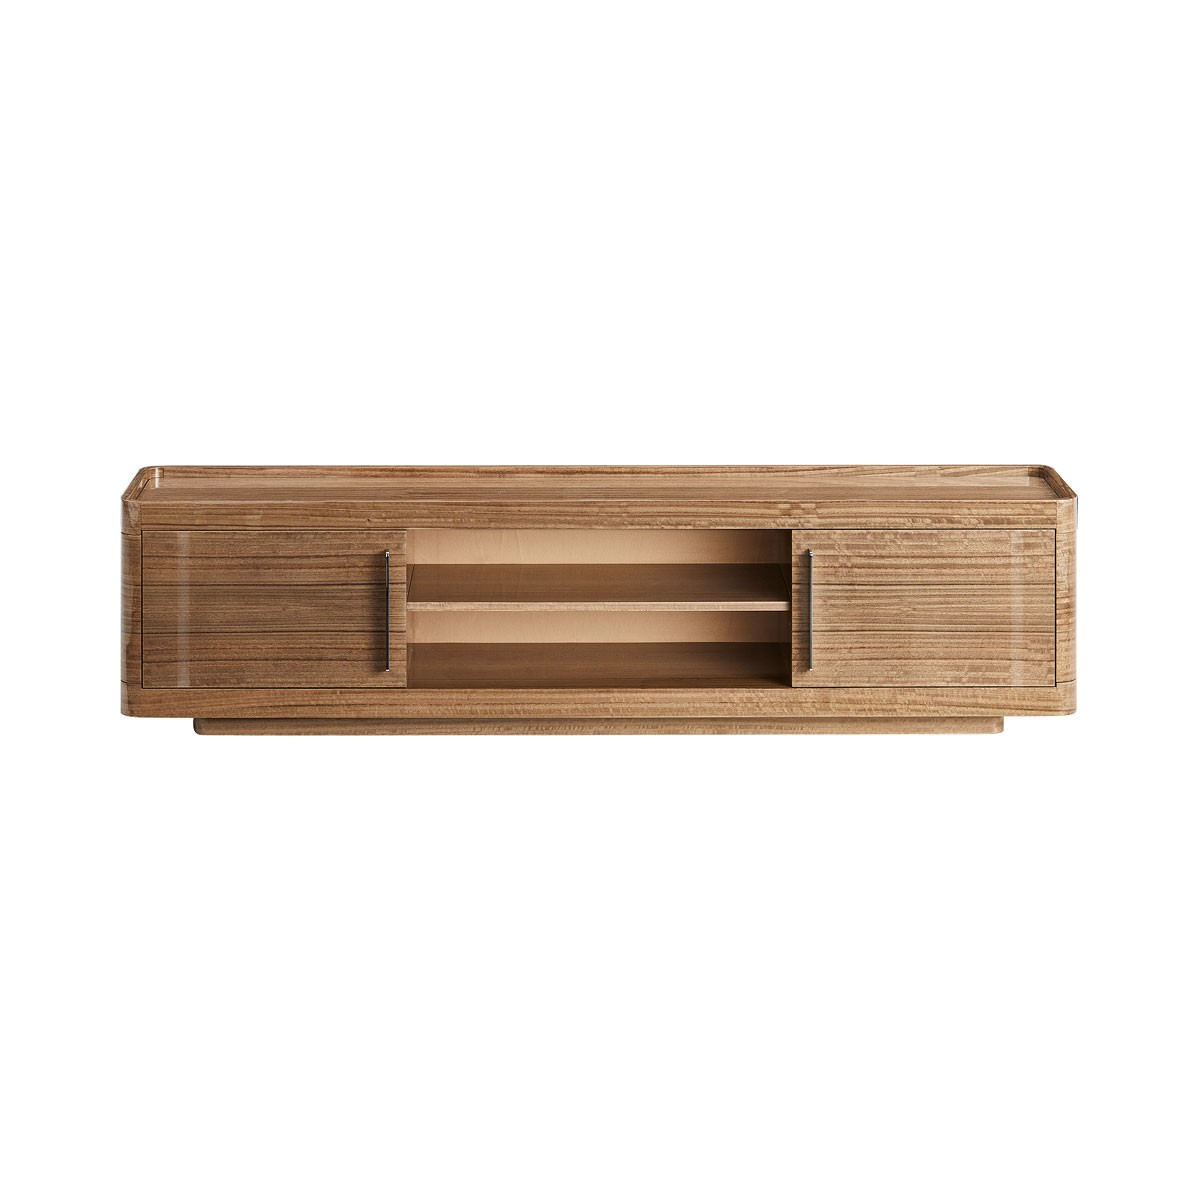 The Alambique TV Sideboard